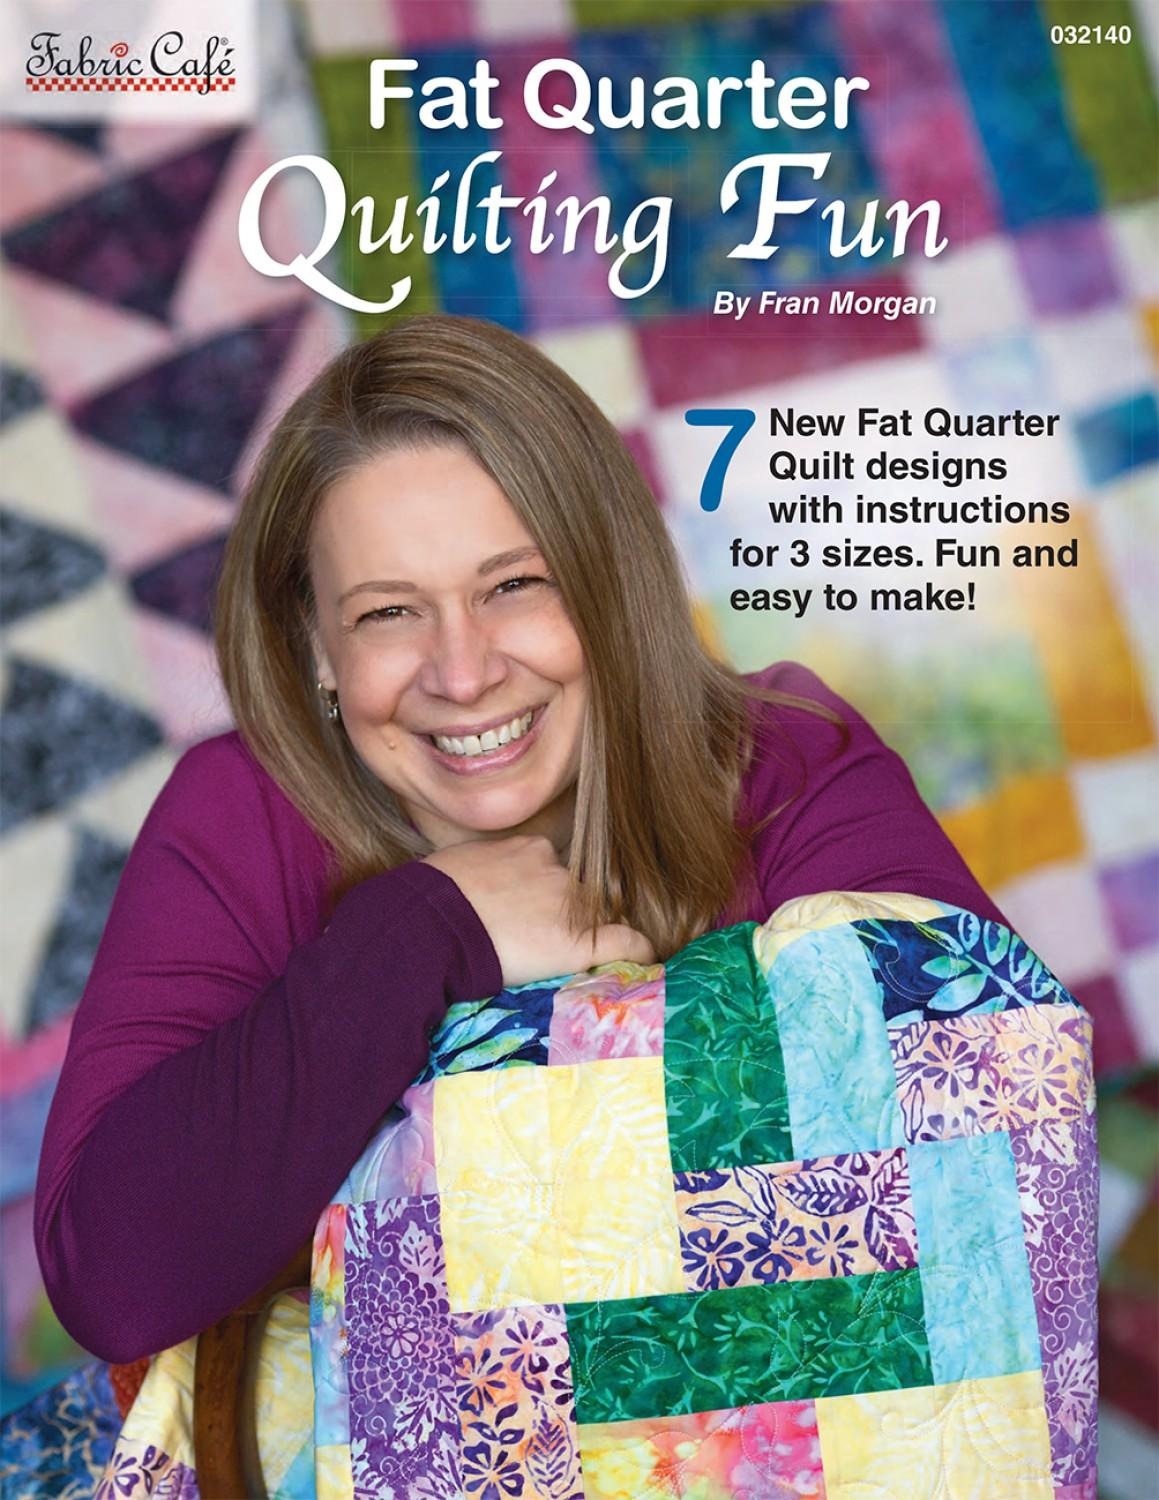 Fat Quarter Quilting Fun